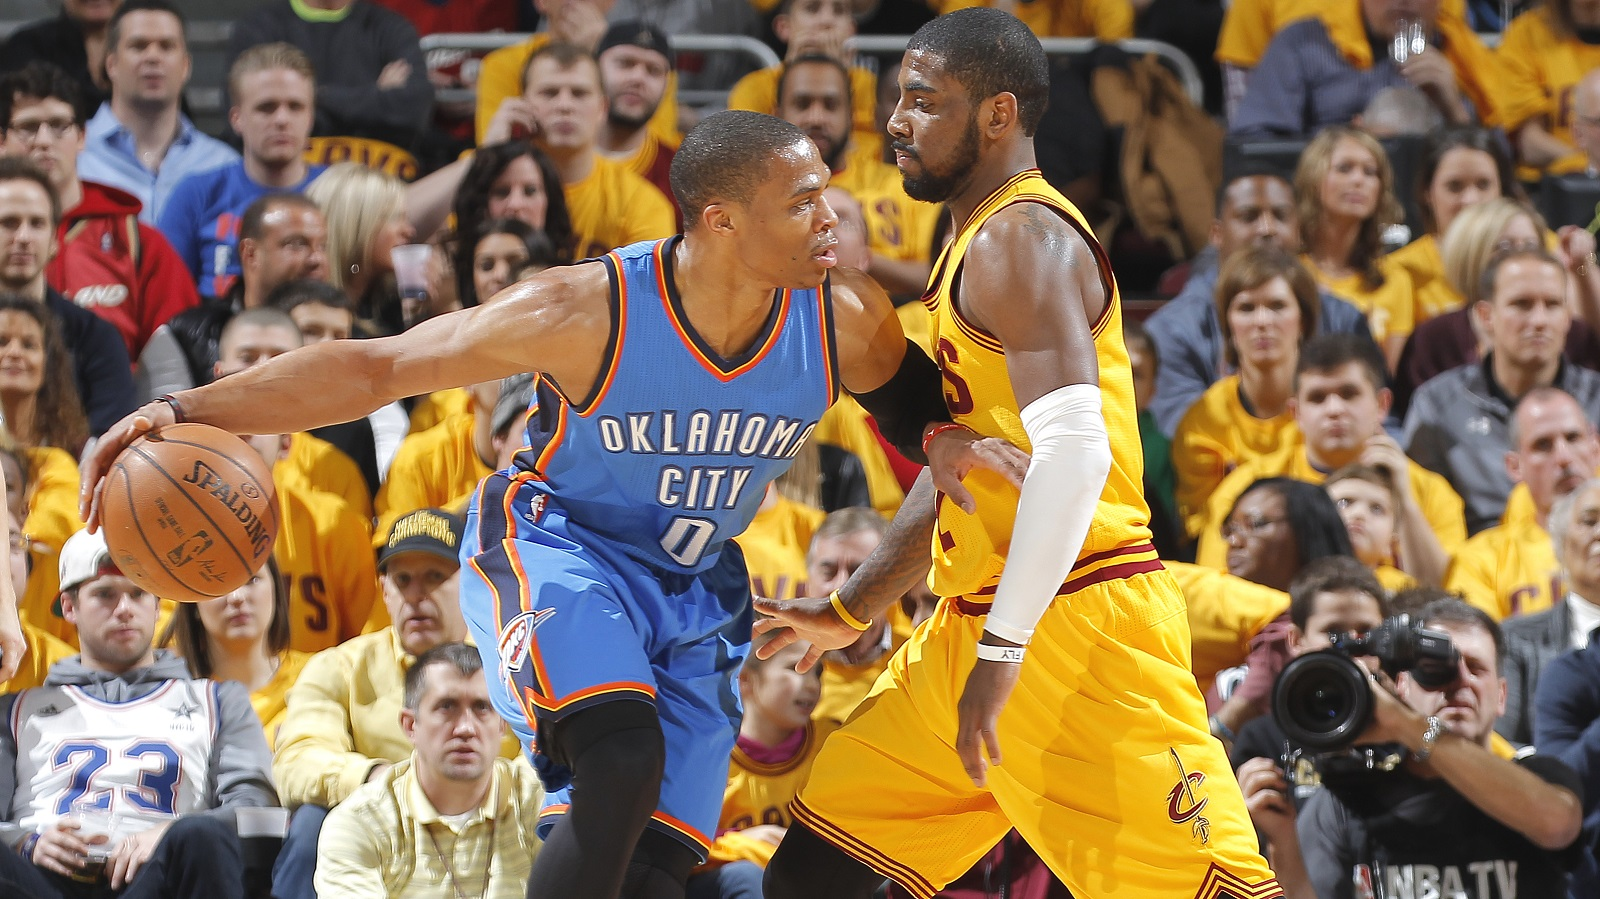 CLEVELAND, OH - JANUARY 25: Russell Westbrook #0 of the Oklahoma City Thunder handles the ball against Kyrie Irving #2 of the Cleveland Cavaliers on January 25, 2015 at Quicken Loans Arena in Cleveland, Ohio. NOTE TO USER: User expressly acknowledges and agrees that, by downloading and or using this Photograph, user is consenting to the terms and condition of the Getty Images License Agreement. (Photo by Rocky Widner/Getty Images)